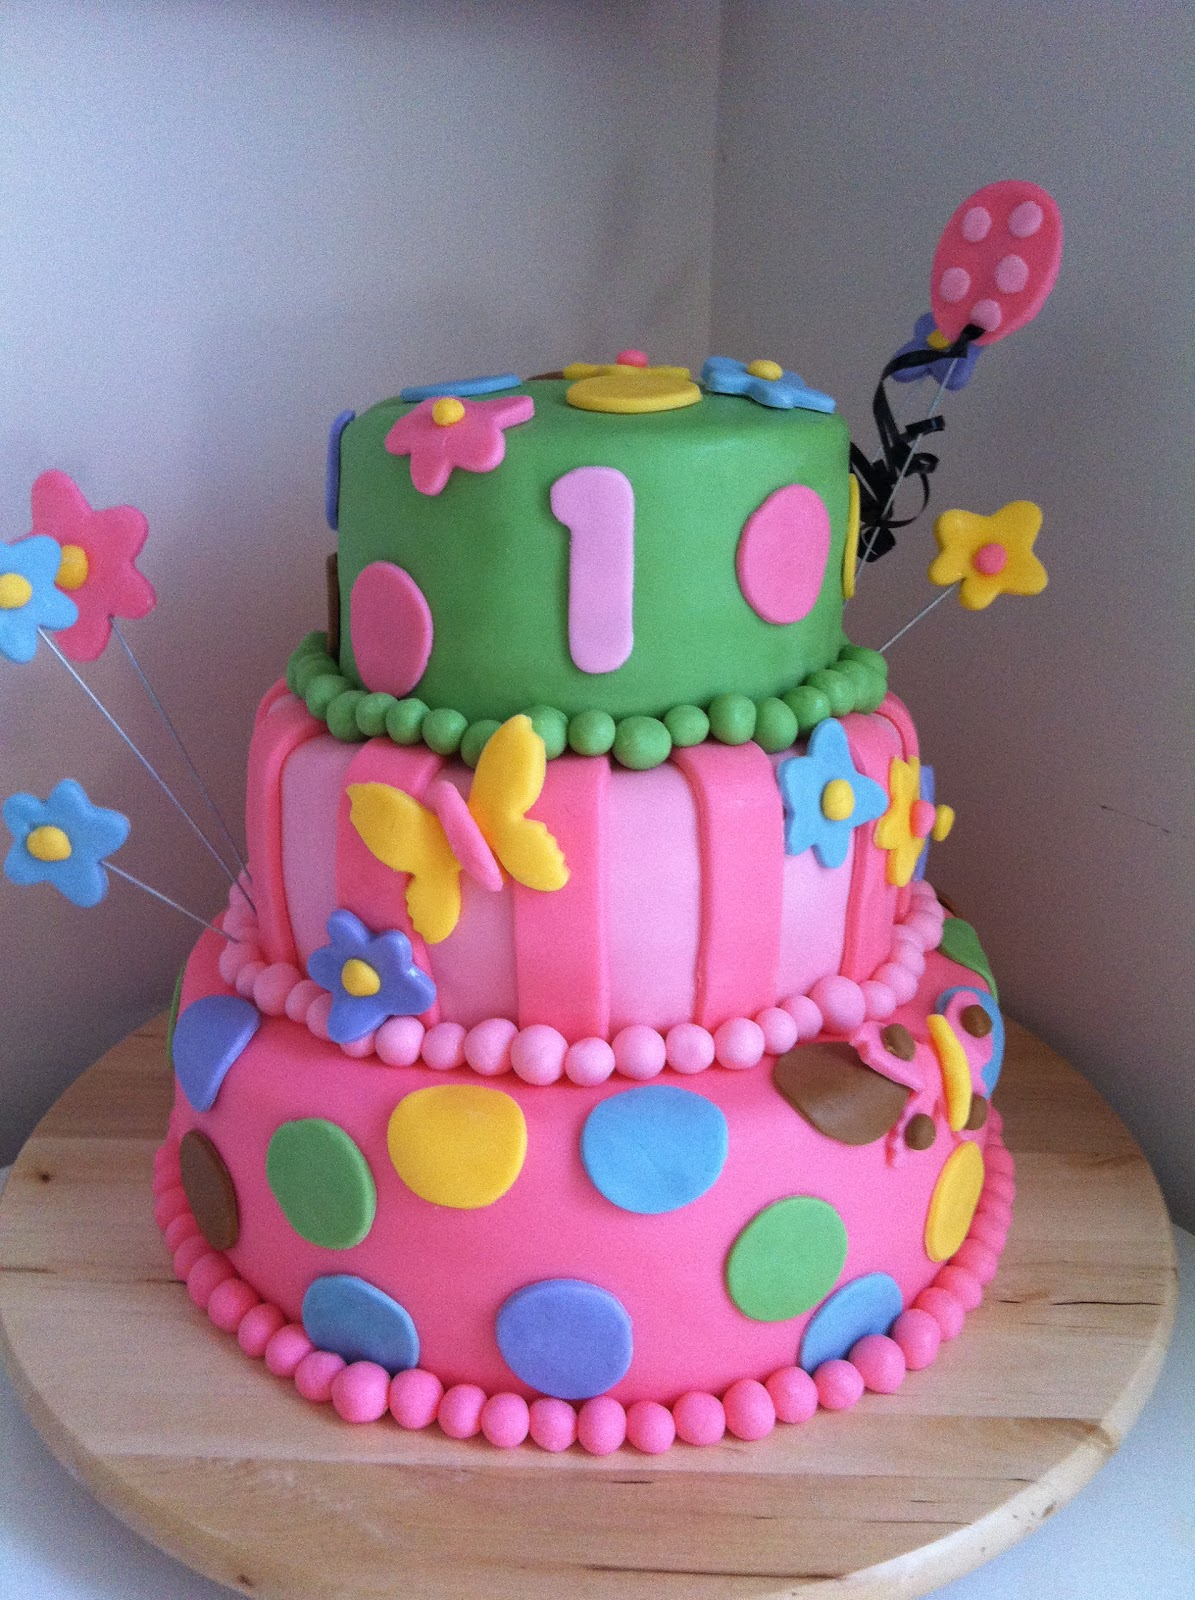 Sweetness by d 1st birthday cakes for girls for 1st birthday cake decoration